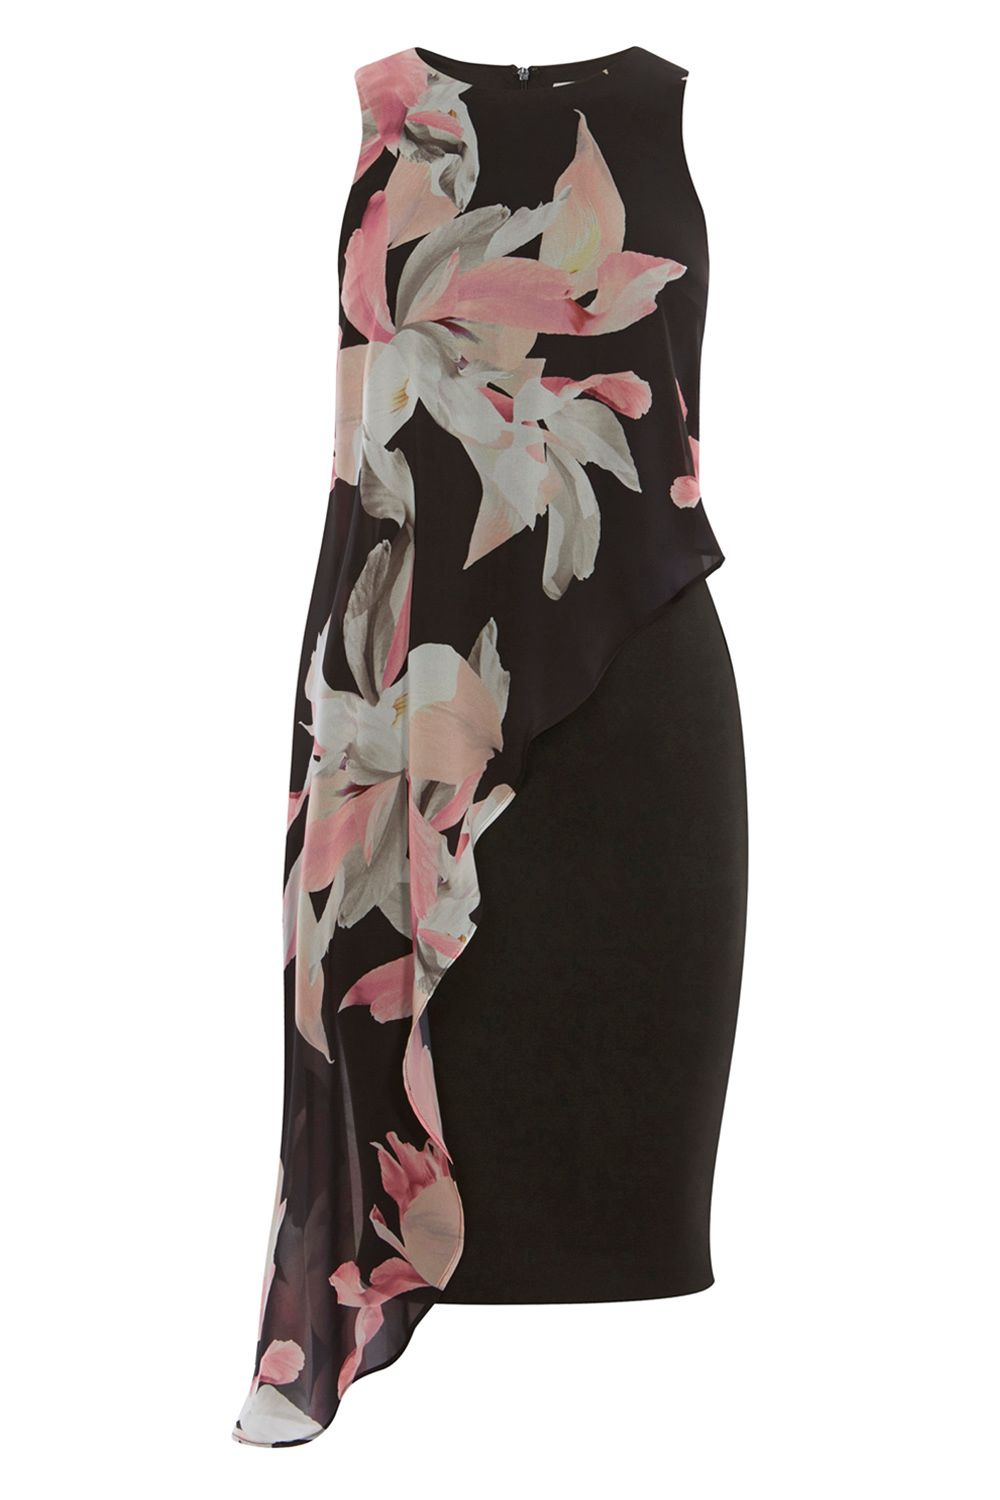 Coast Victorie Print Arossa Dress, Multi-Coloured